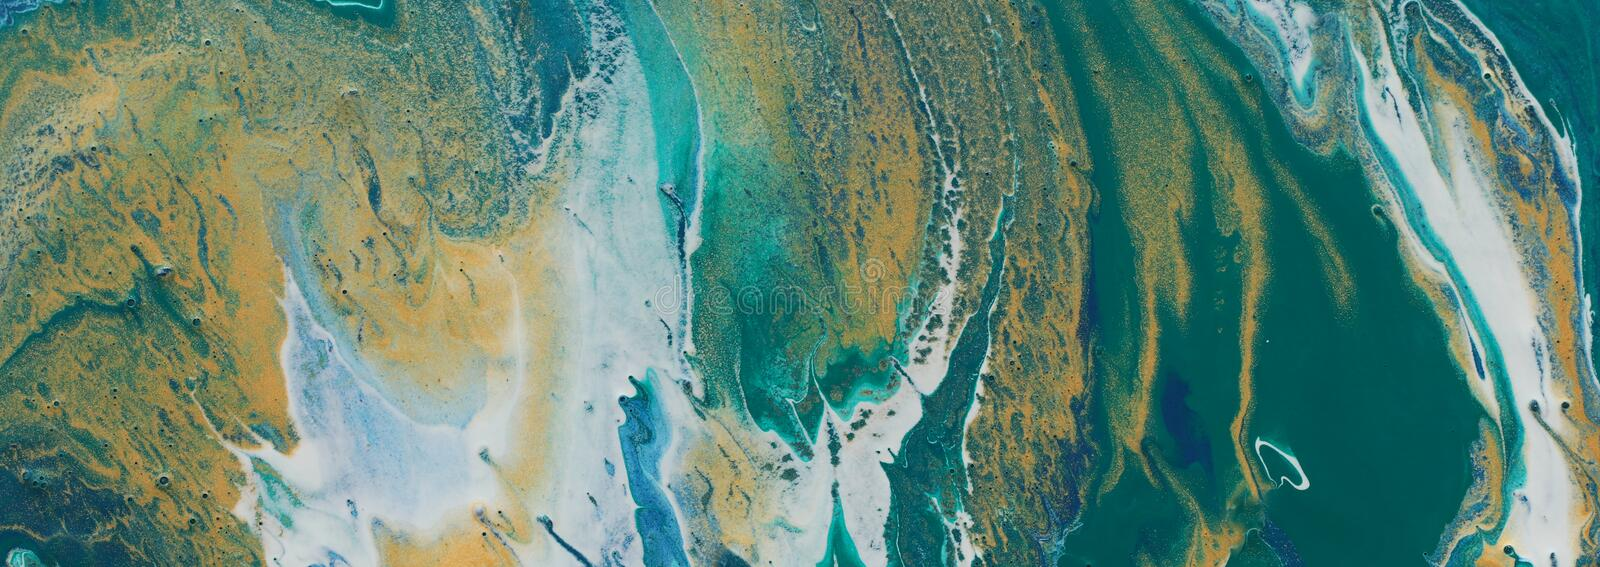 Art photography of abstract marbleized effect background. turquoise, emerald green, blue and gold creative colors. Beautiful paint royalty free stock images